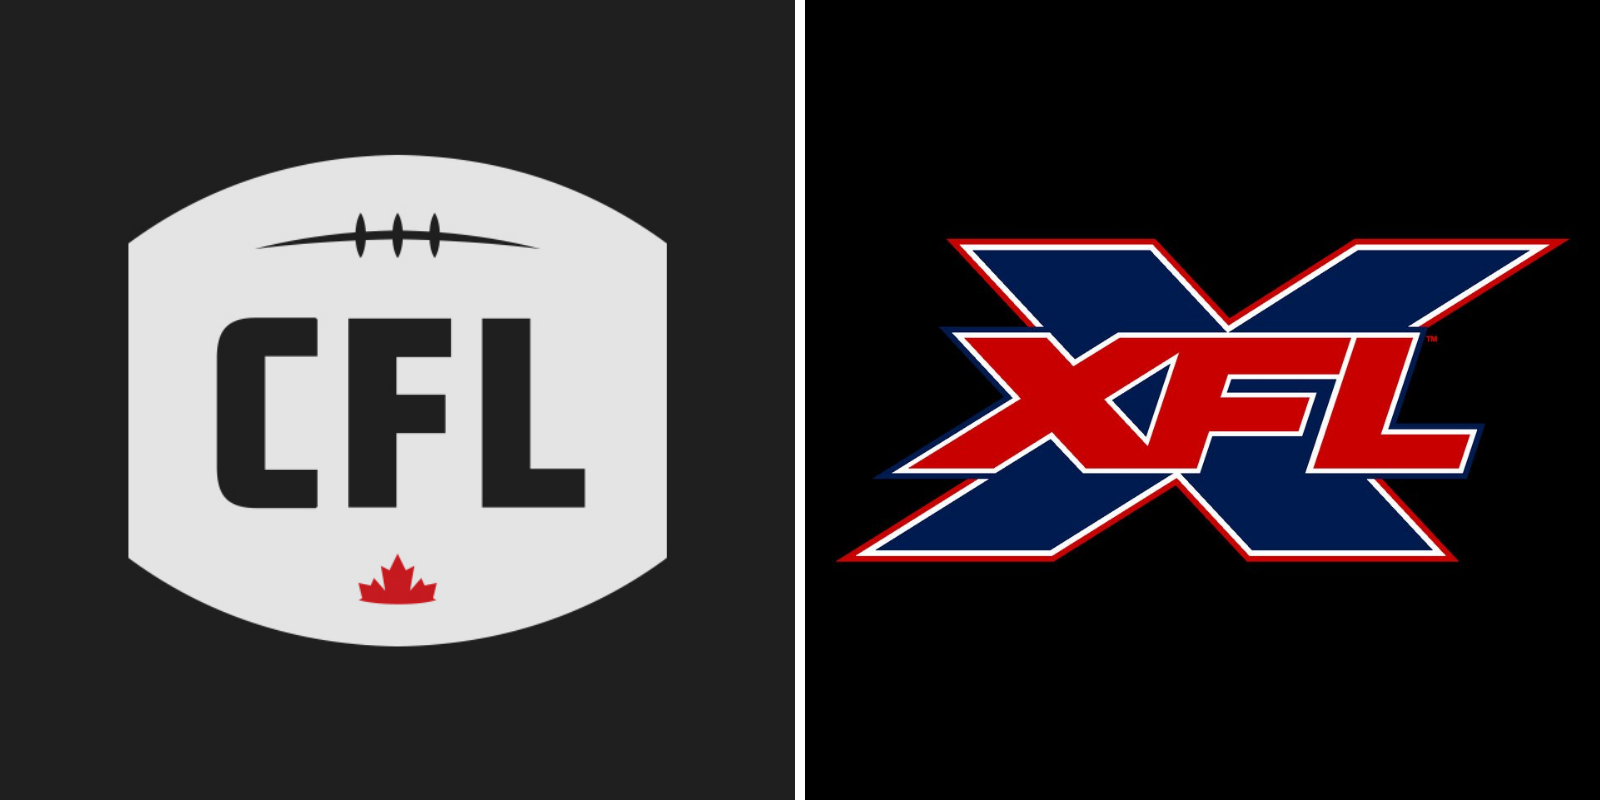 MERGER? CFL and XFL football leagues 'exploring opportunities' for alignment